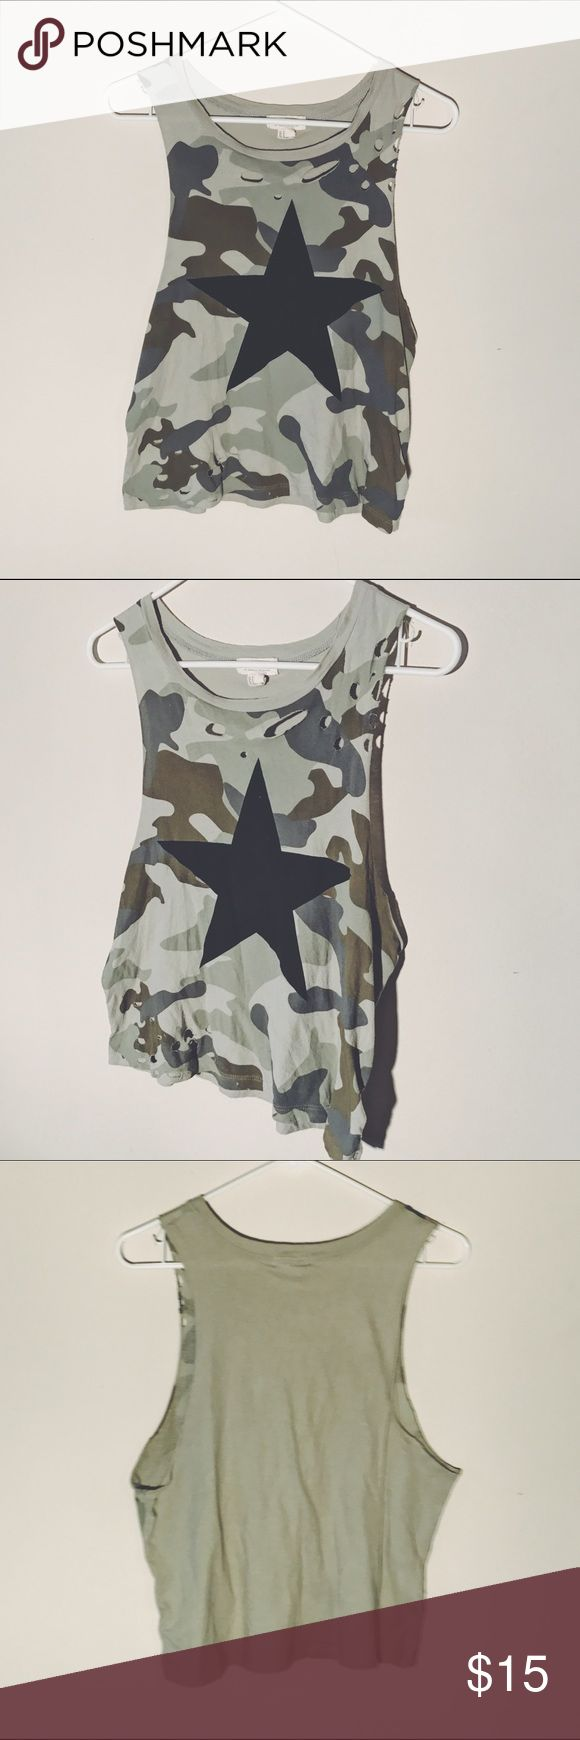 Distressed camouflage tank top/crop Very cute & distressed camouflage tank top/crop top. it came distressed from the manufacturer. it has holes all over the front and is so super comfortable. multiple shades of green & is in great used condition. size medium.   BUNDLE ➕ SAVE   ••• #guc #camo #camouflage #army #green #crop #holes #short #summer #thin Tops Tank Tops